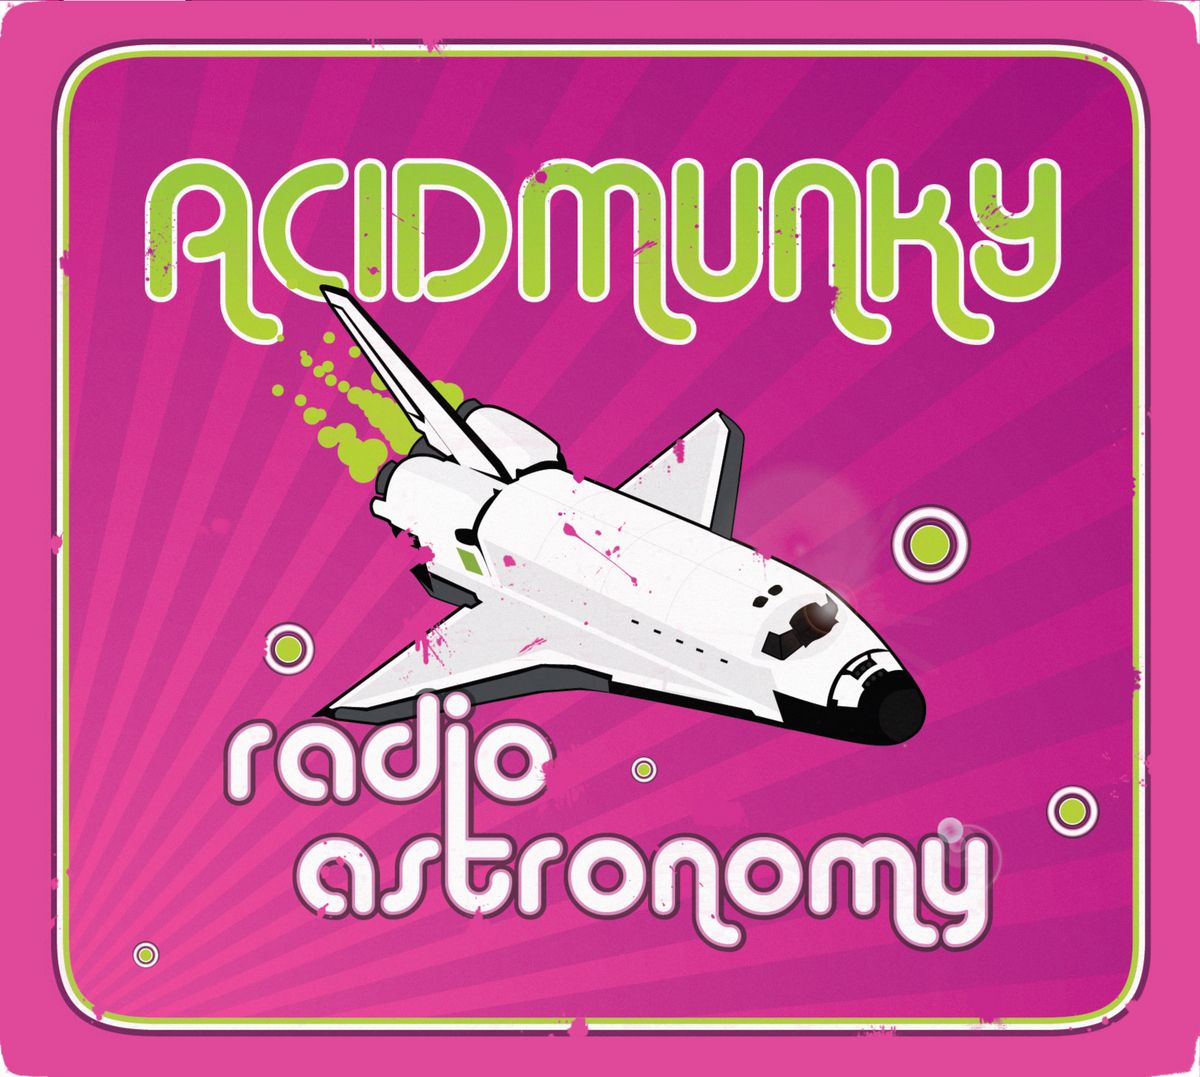 Radio Astronomy Cover